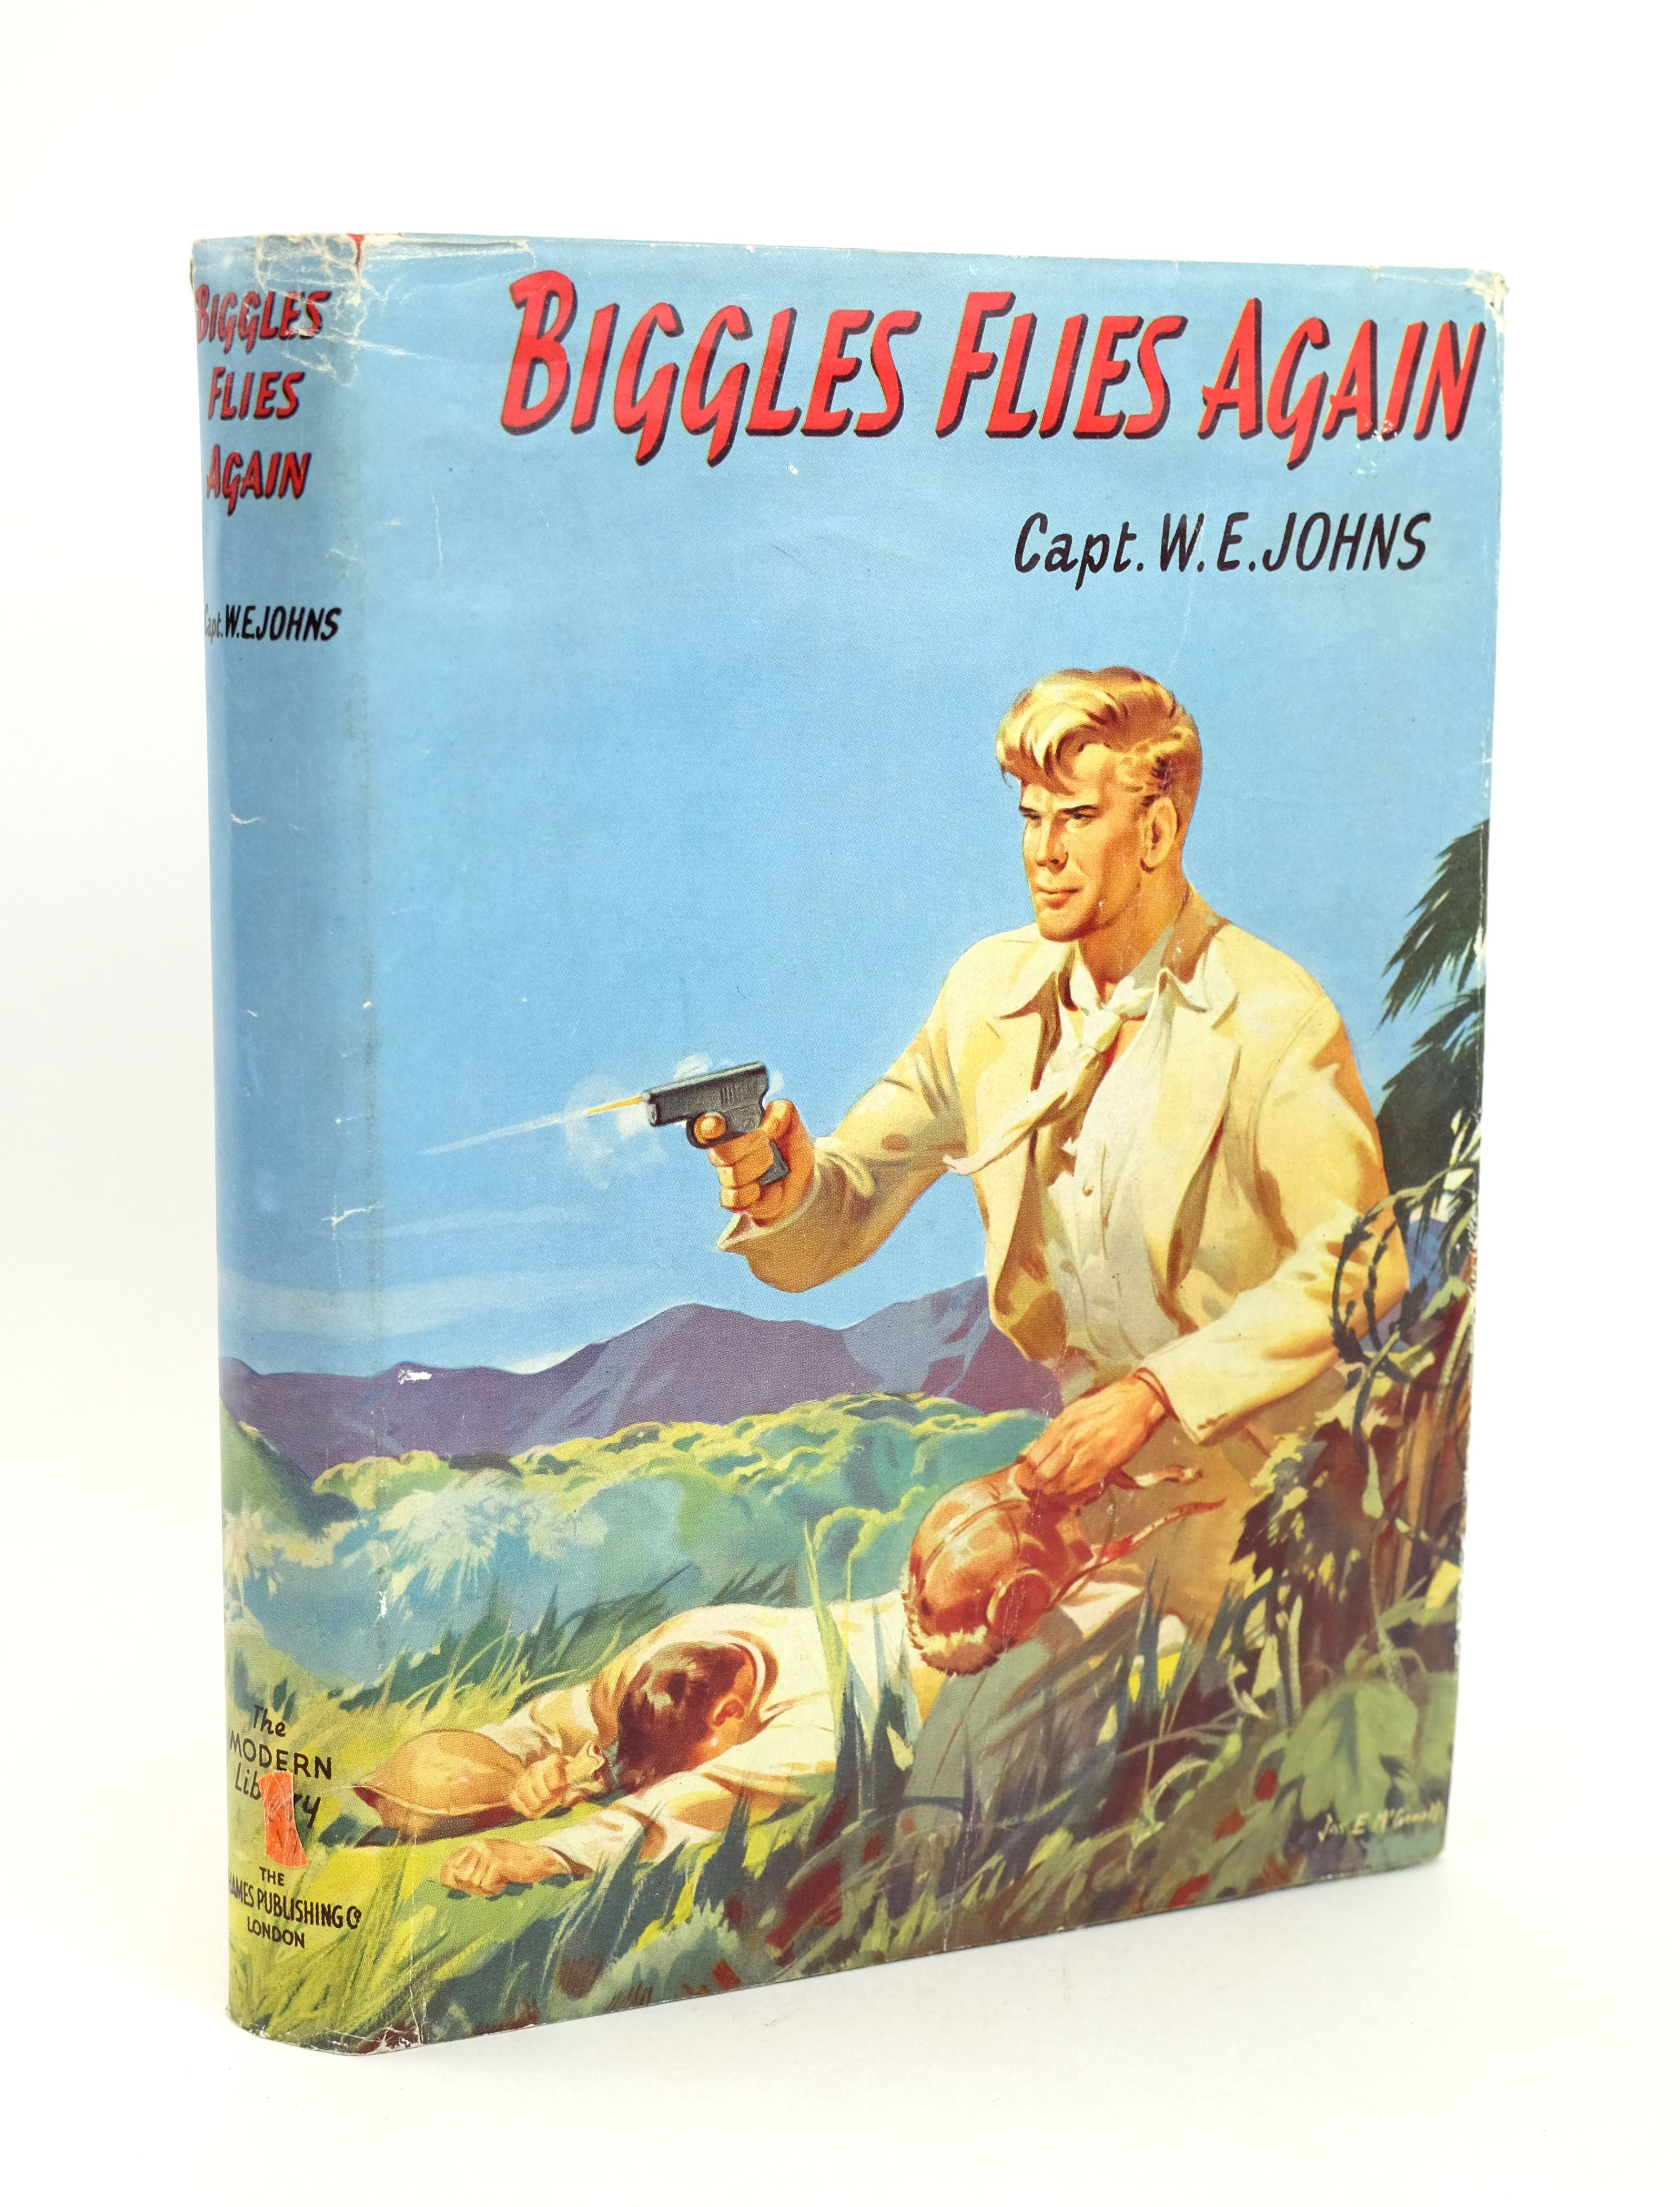 Photo of BIGGLES FLIES AGAIN written by Johns, W.E. illustrated by McConnell, J.E. published by The Thames Publishing Co. (STOCK CODE: 1318591)  for sale by Stella & Rose's Books